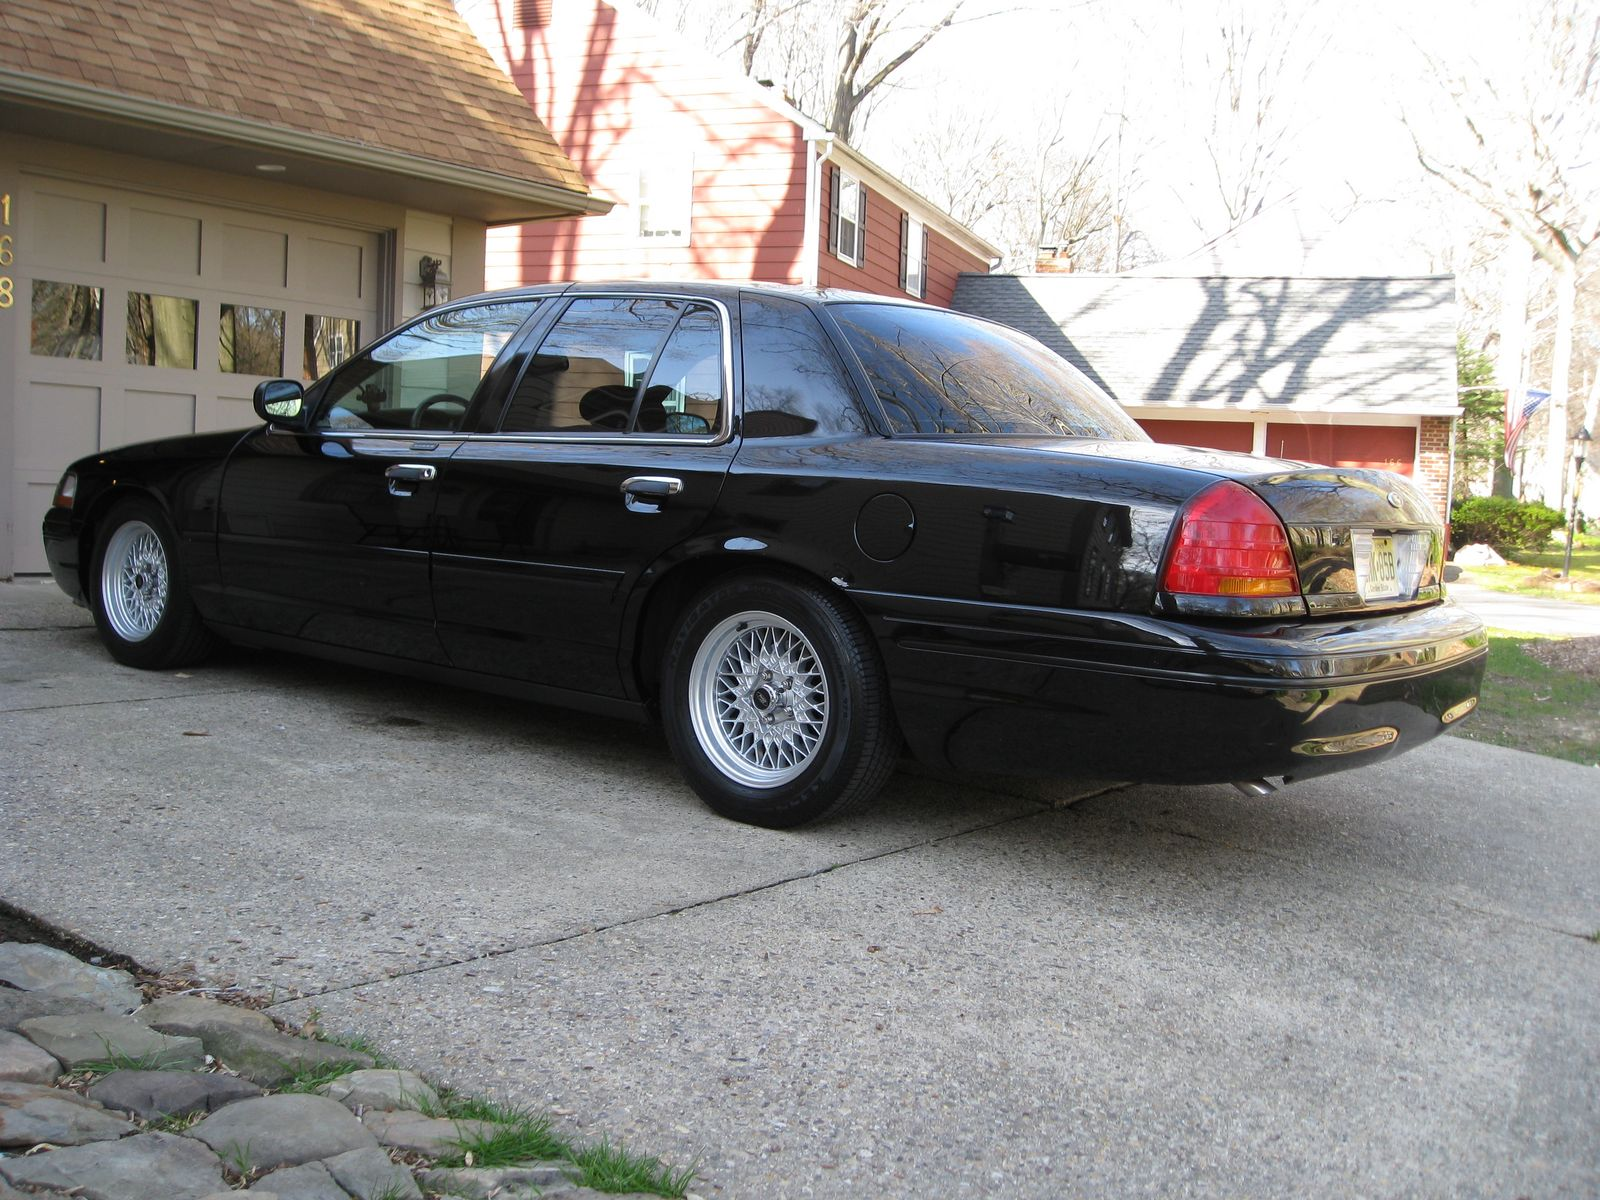 markschoen s ford crown vic lx hpp readers rides ford crown vic lx hpp readers rides